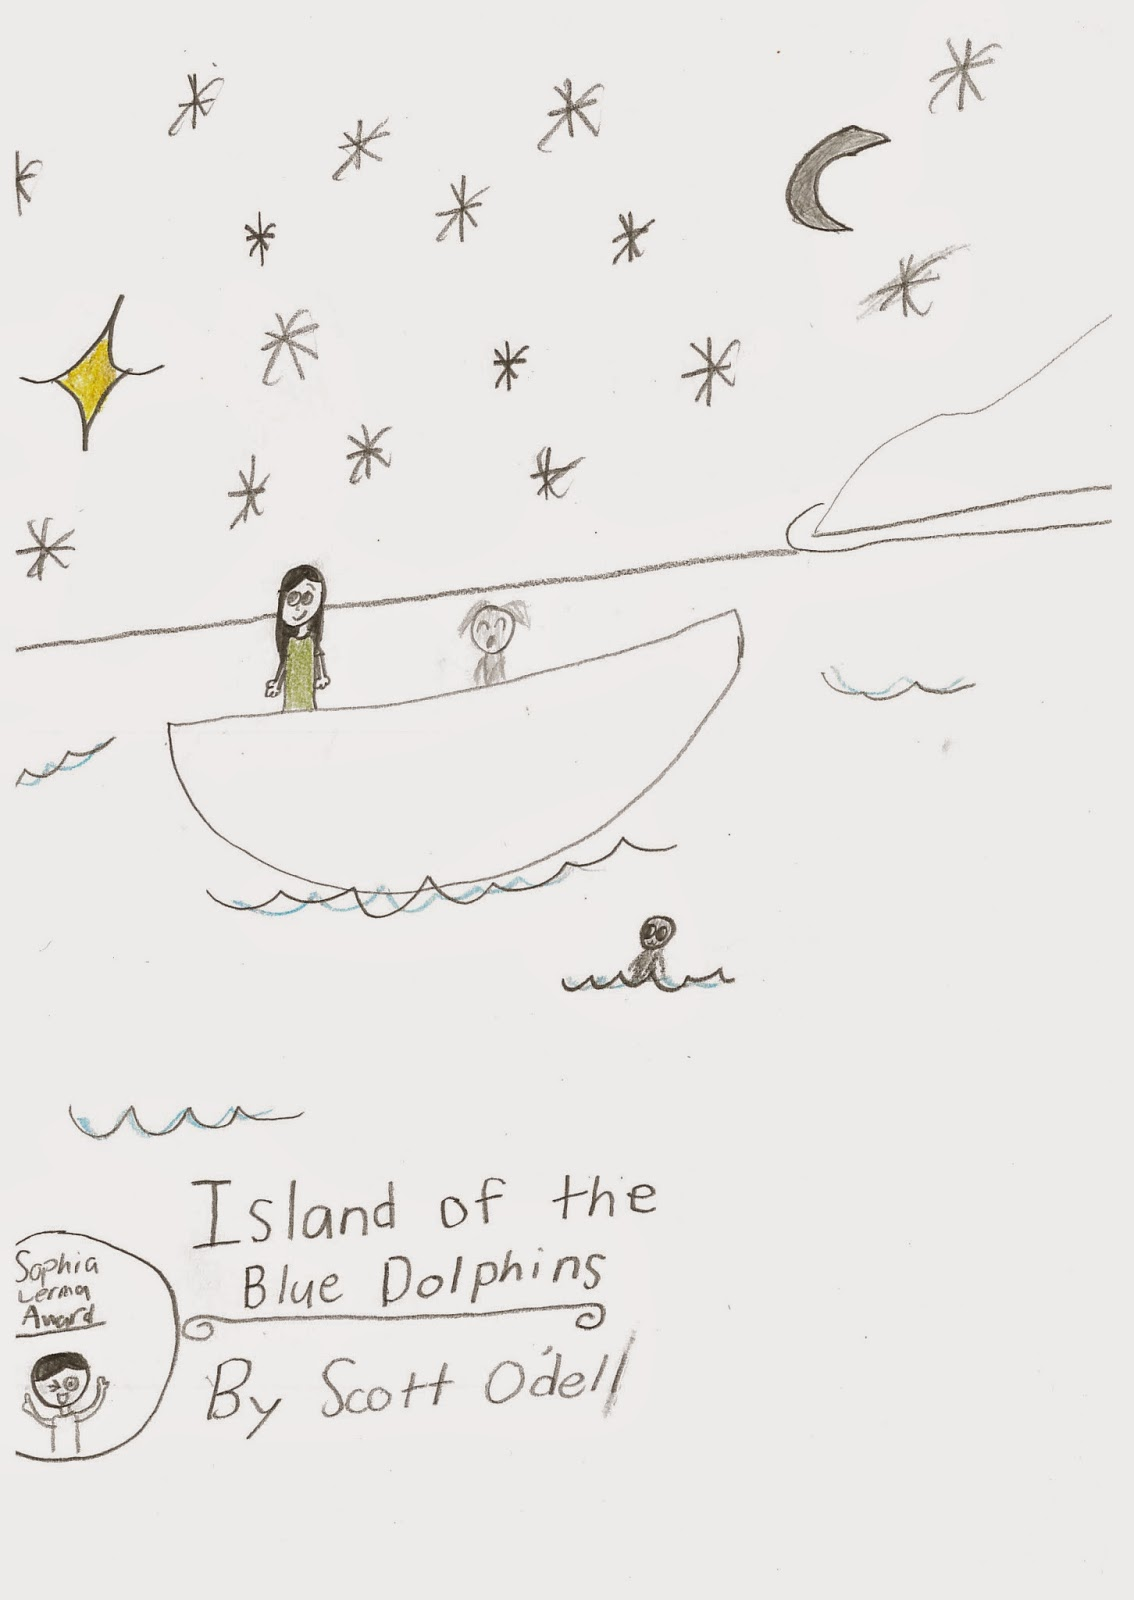 punk rock parents here is her essay island of the blue dolphins